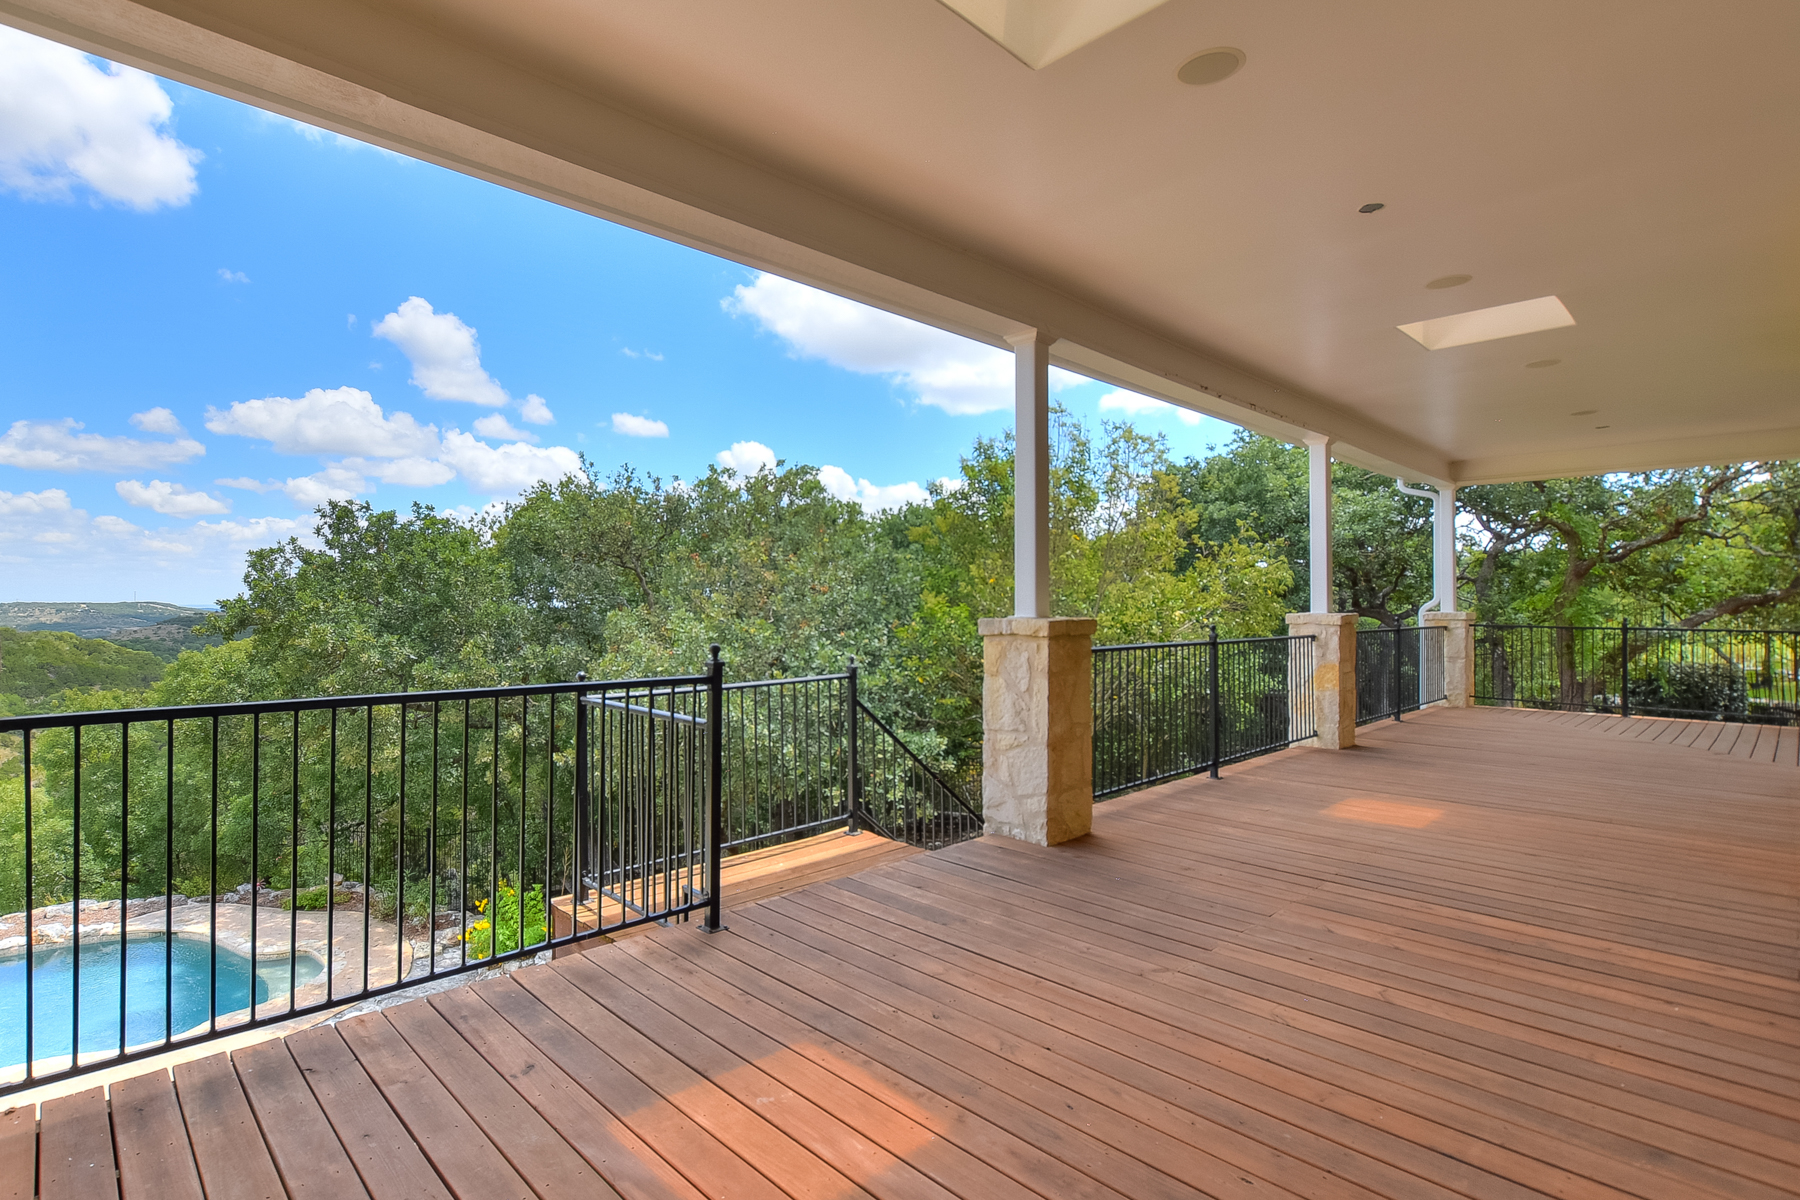 Additional photo for property listing at Gorgeous Views in Tapatio Springs 125 Paradise Point Dr Boerne, Texas 78006 United States